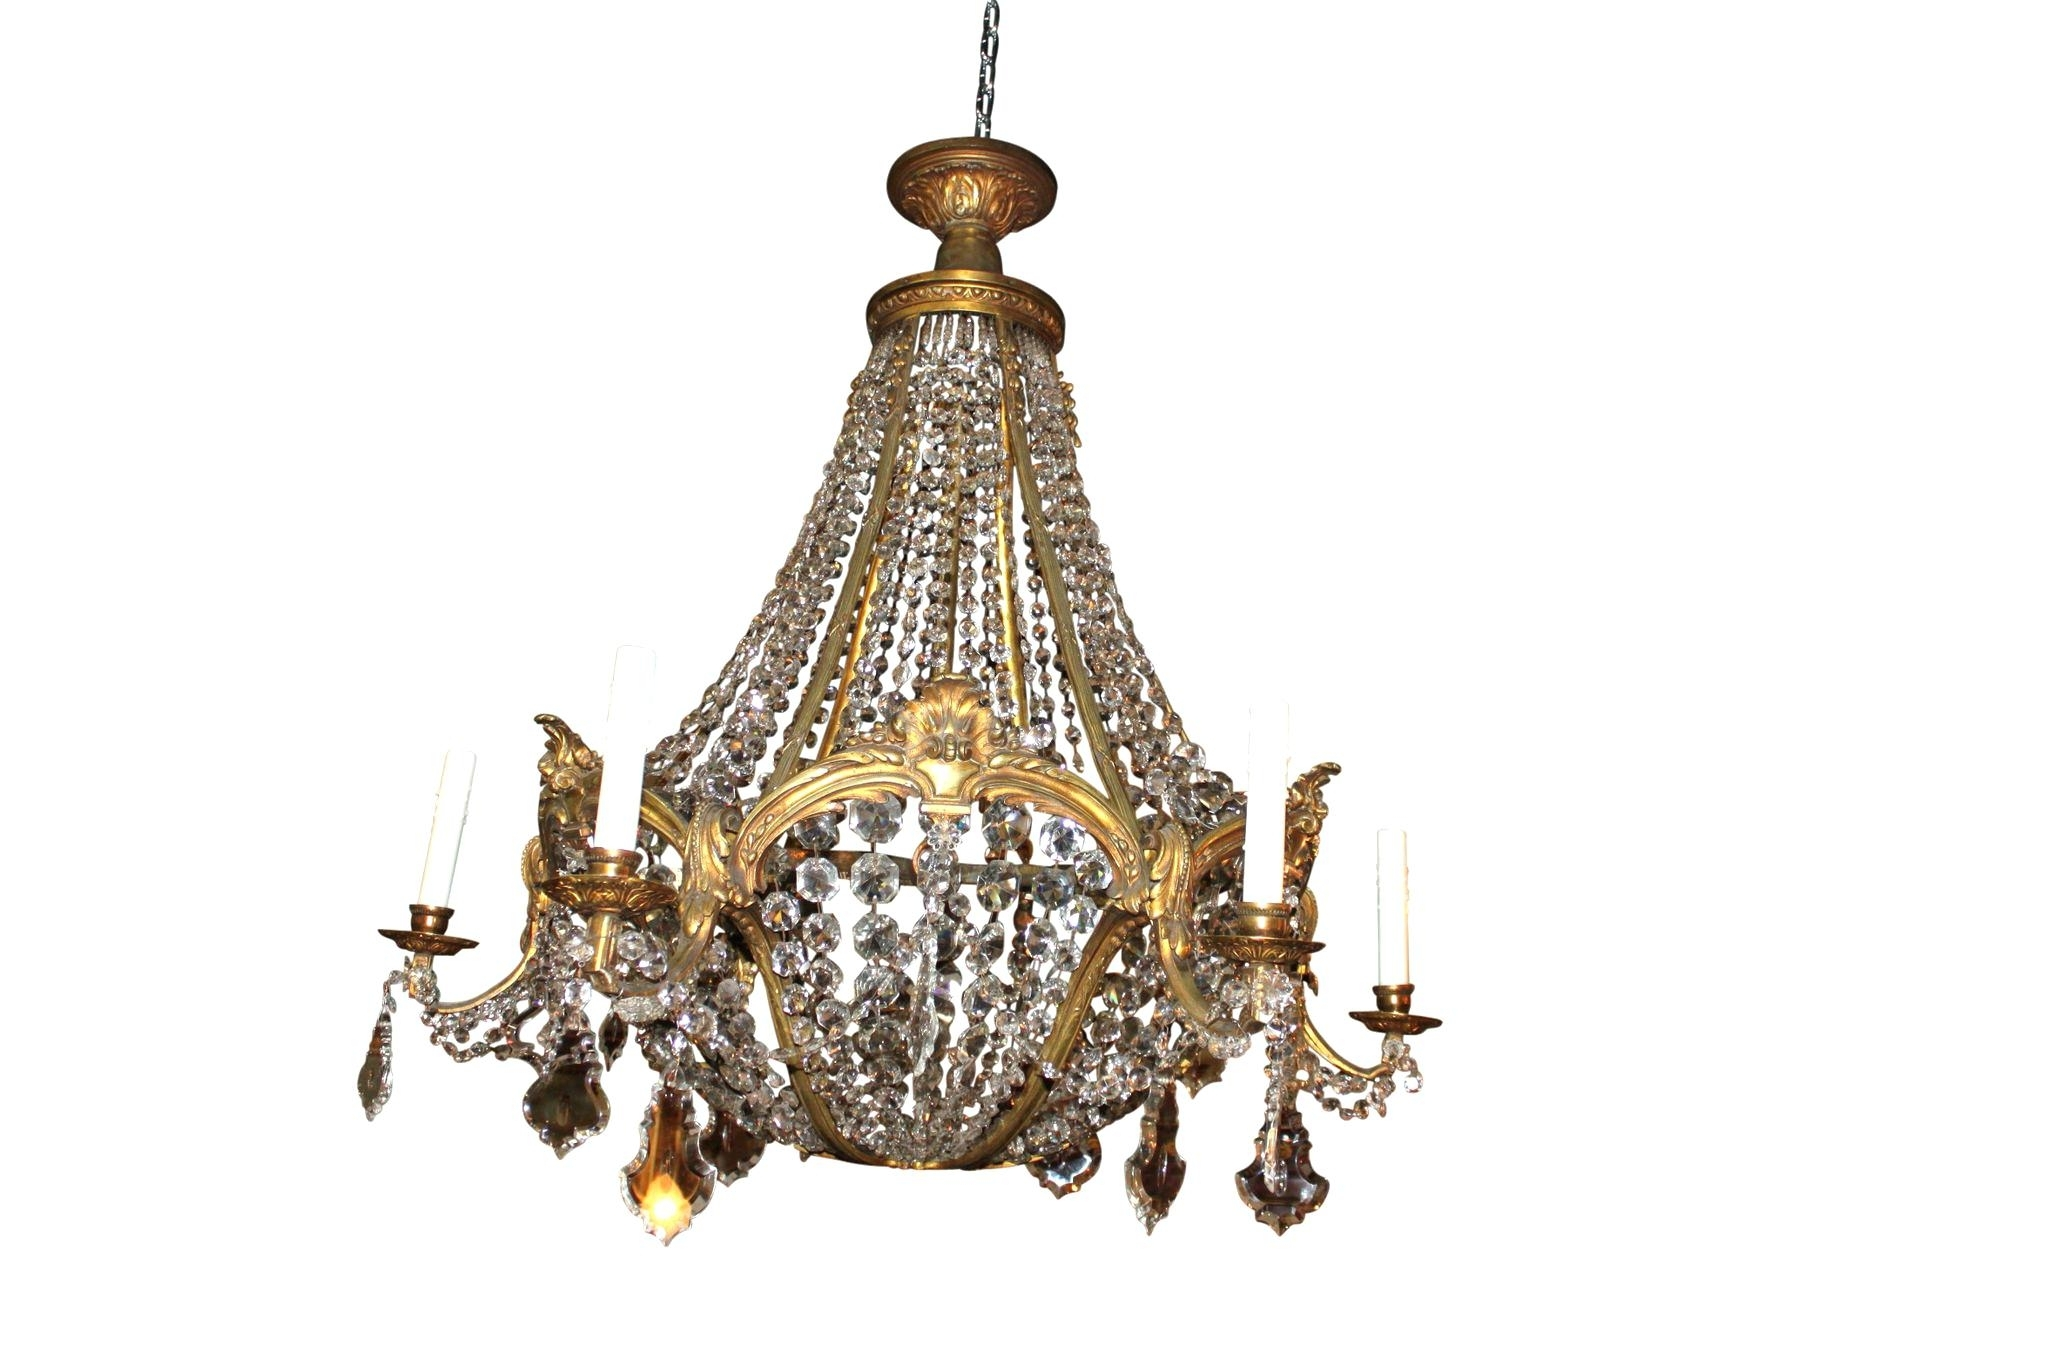 Current Vintage Chandeliers Inside Serena And Lily Chandelier Glass Antique Designs Home Types Of Image (View 4 of 20)